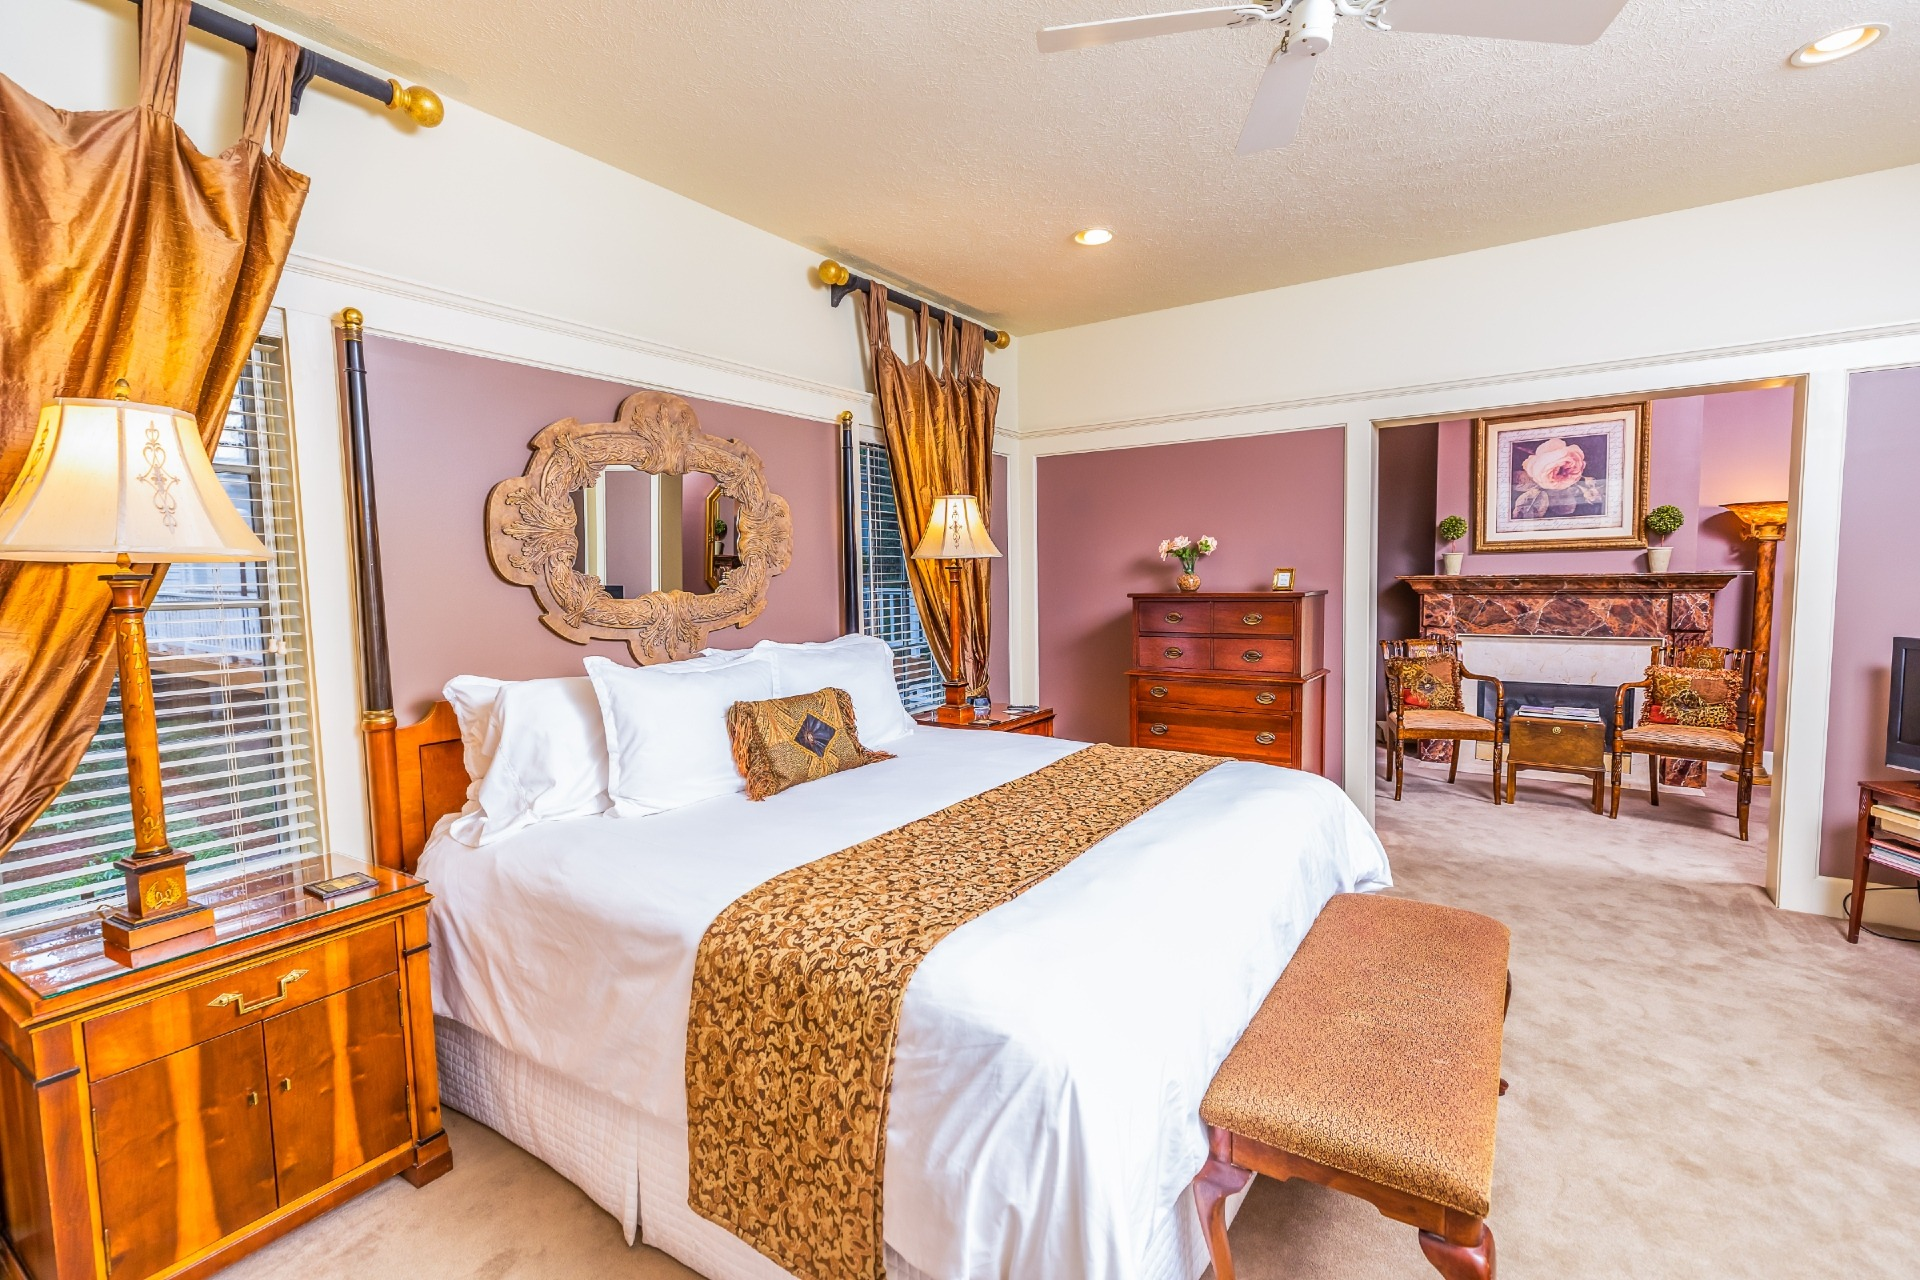 20191030-jackson-mississippi-bed-and-breakfast-fairview-inn-leopard-rose-room-46-Edit (1)